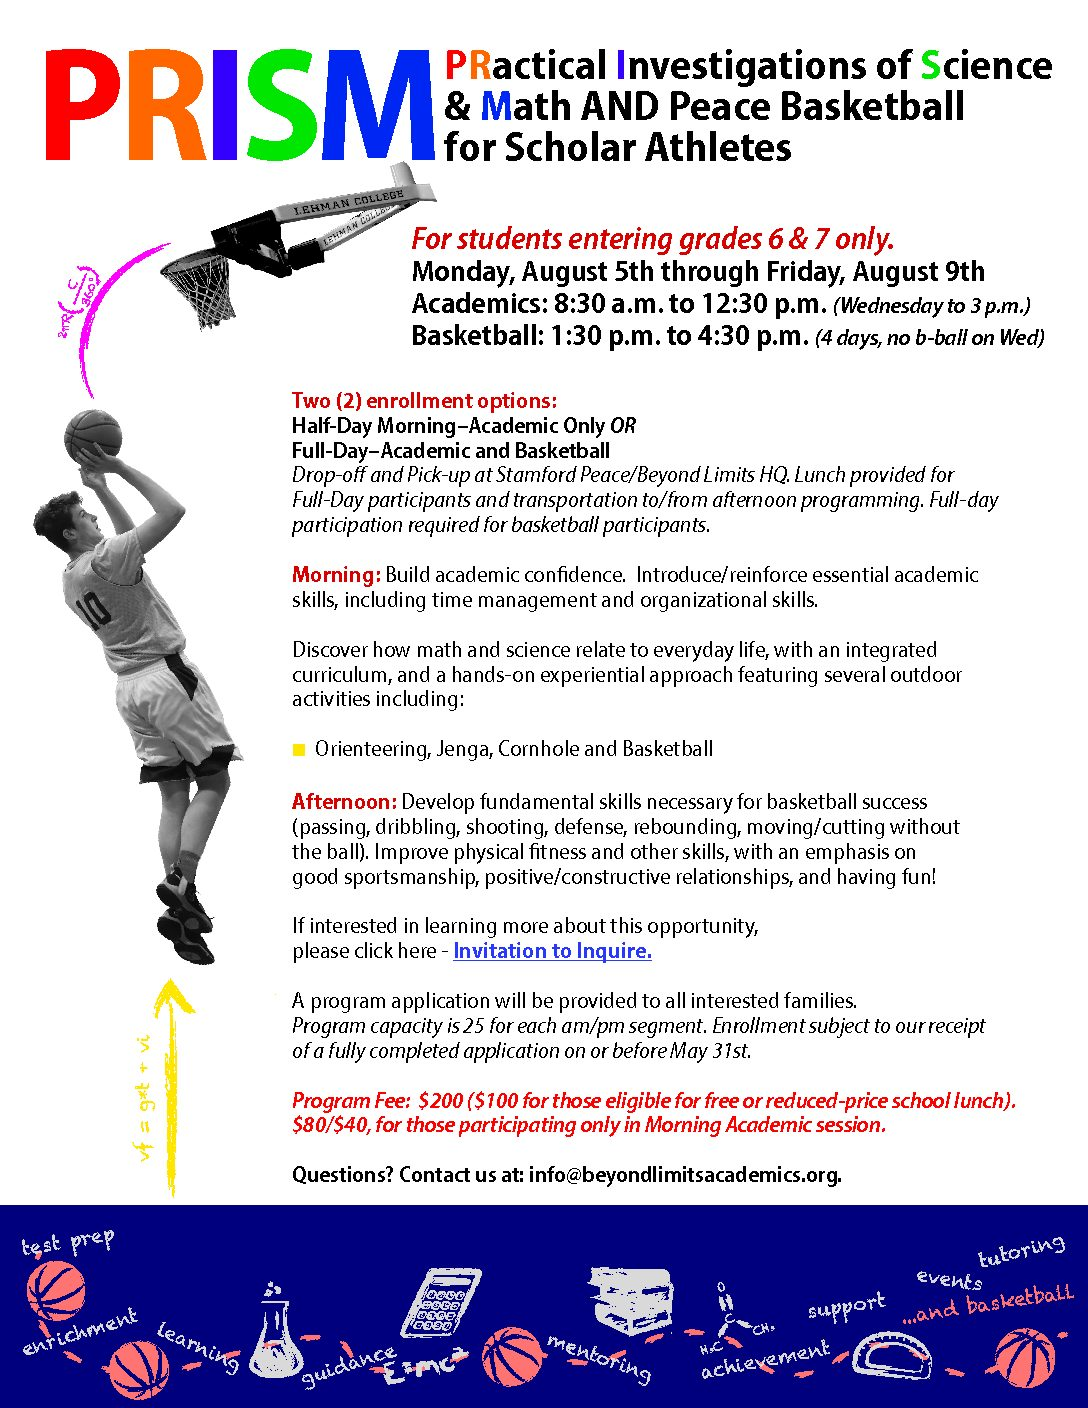 PRISM and Peace Basketball for Scholar Athletes – Beyond Limits